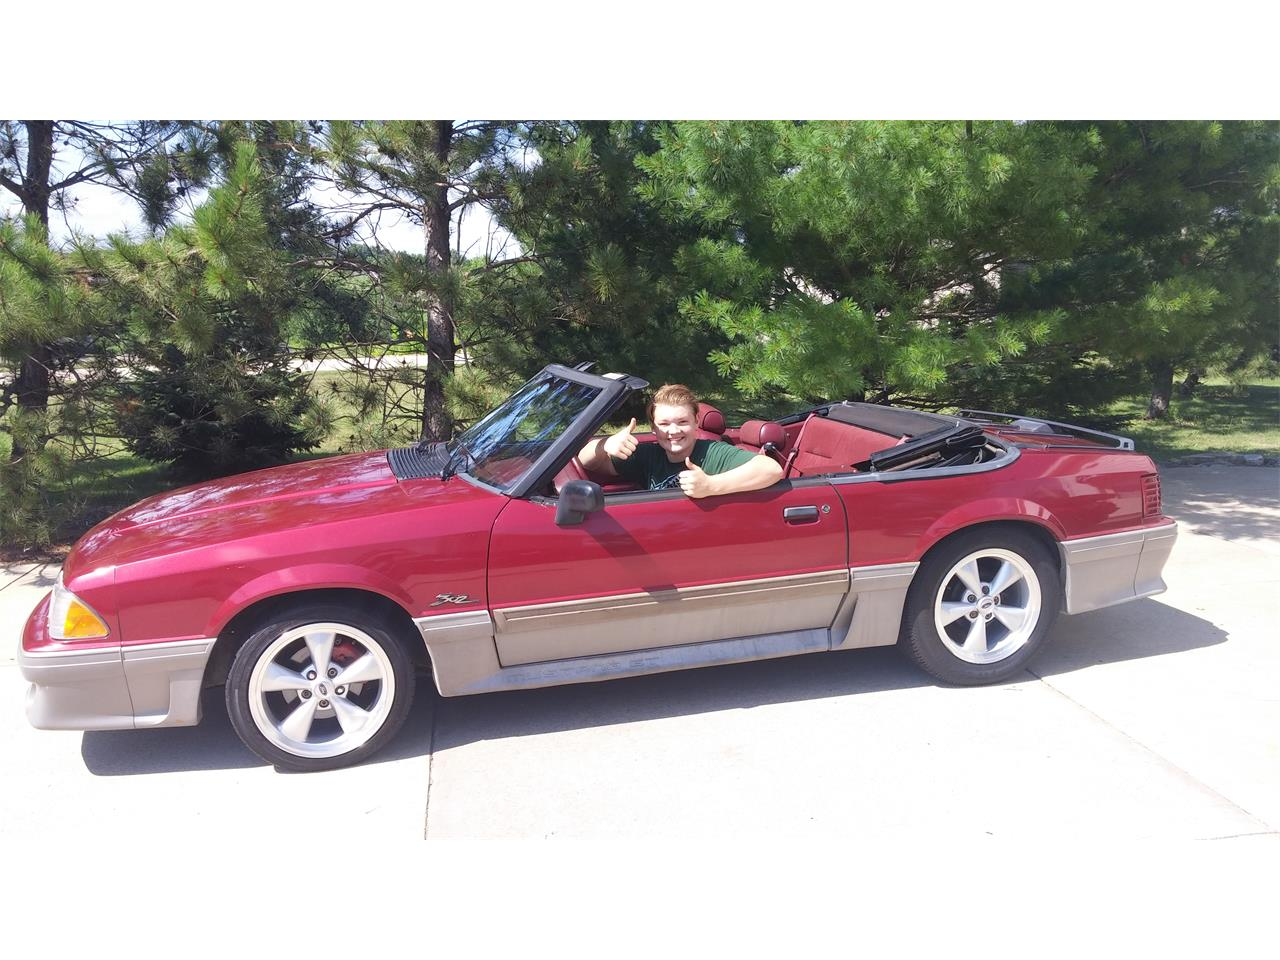 For sale 1993 ford mustang gt in rochestermn minnesota